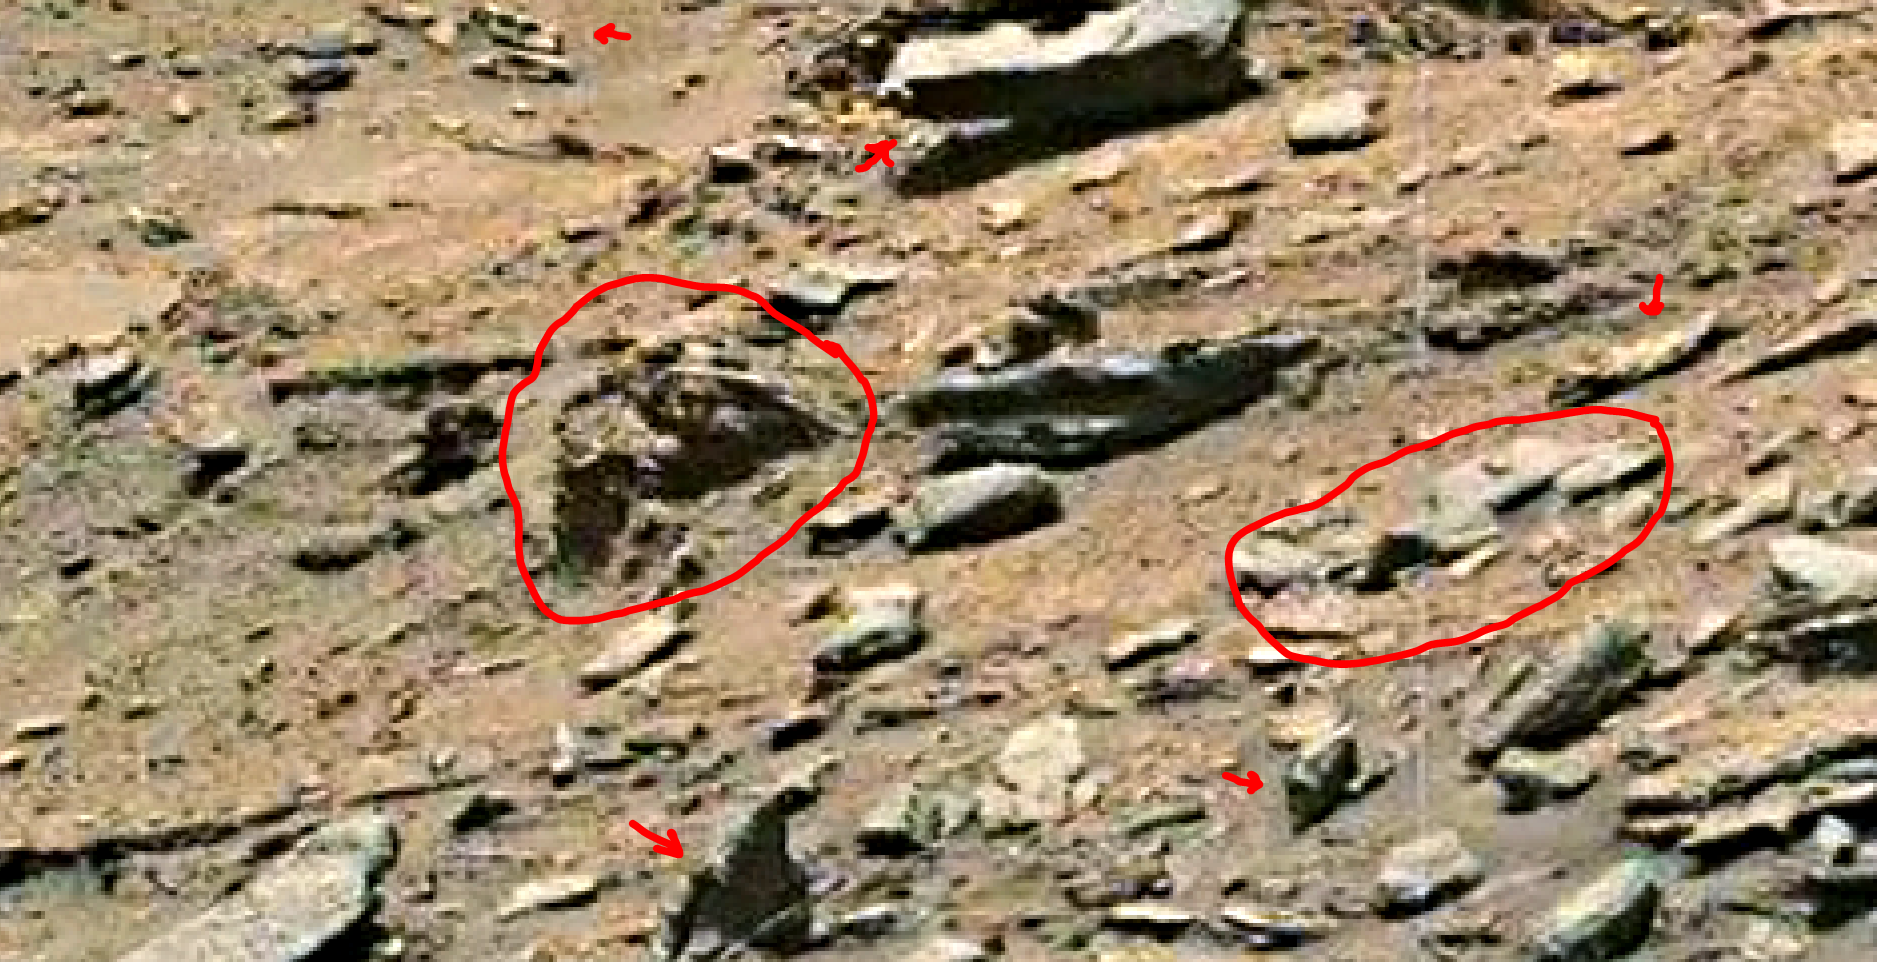 mars sol 1432 b&w anomaly artifacts 12 was life on mars